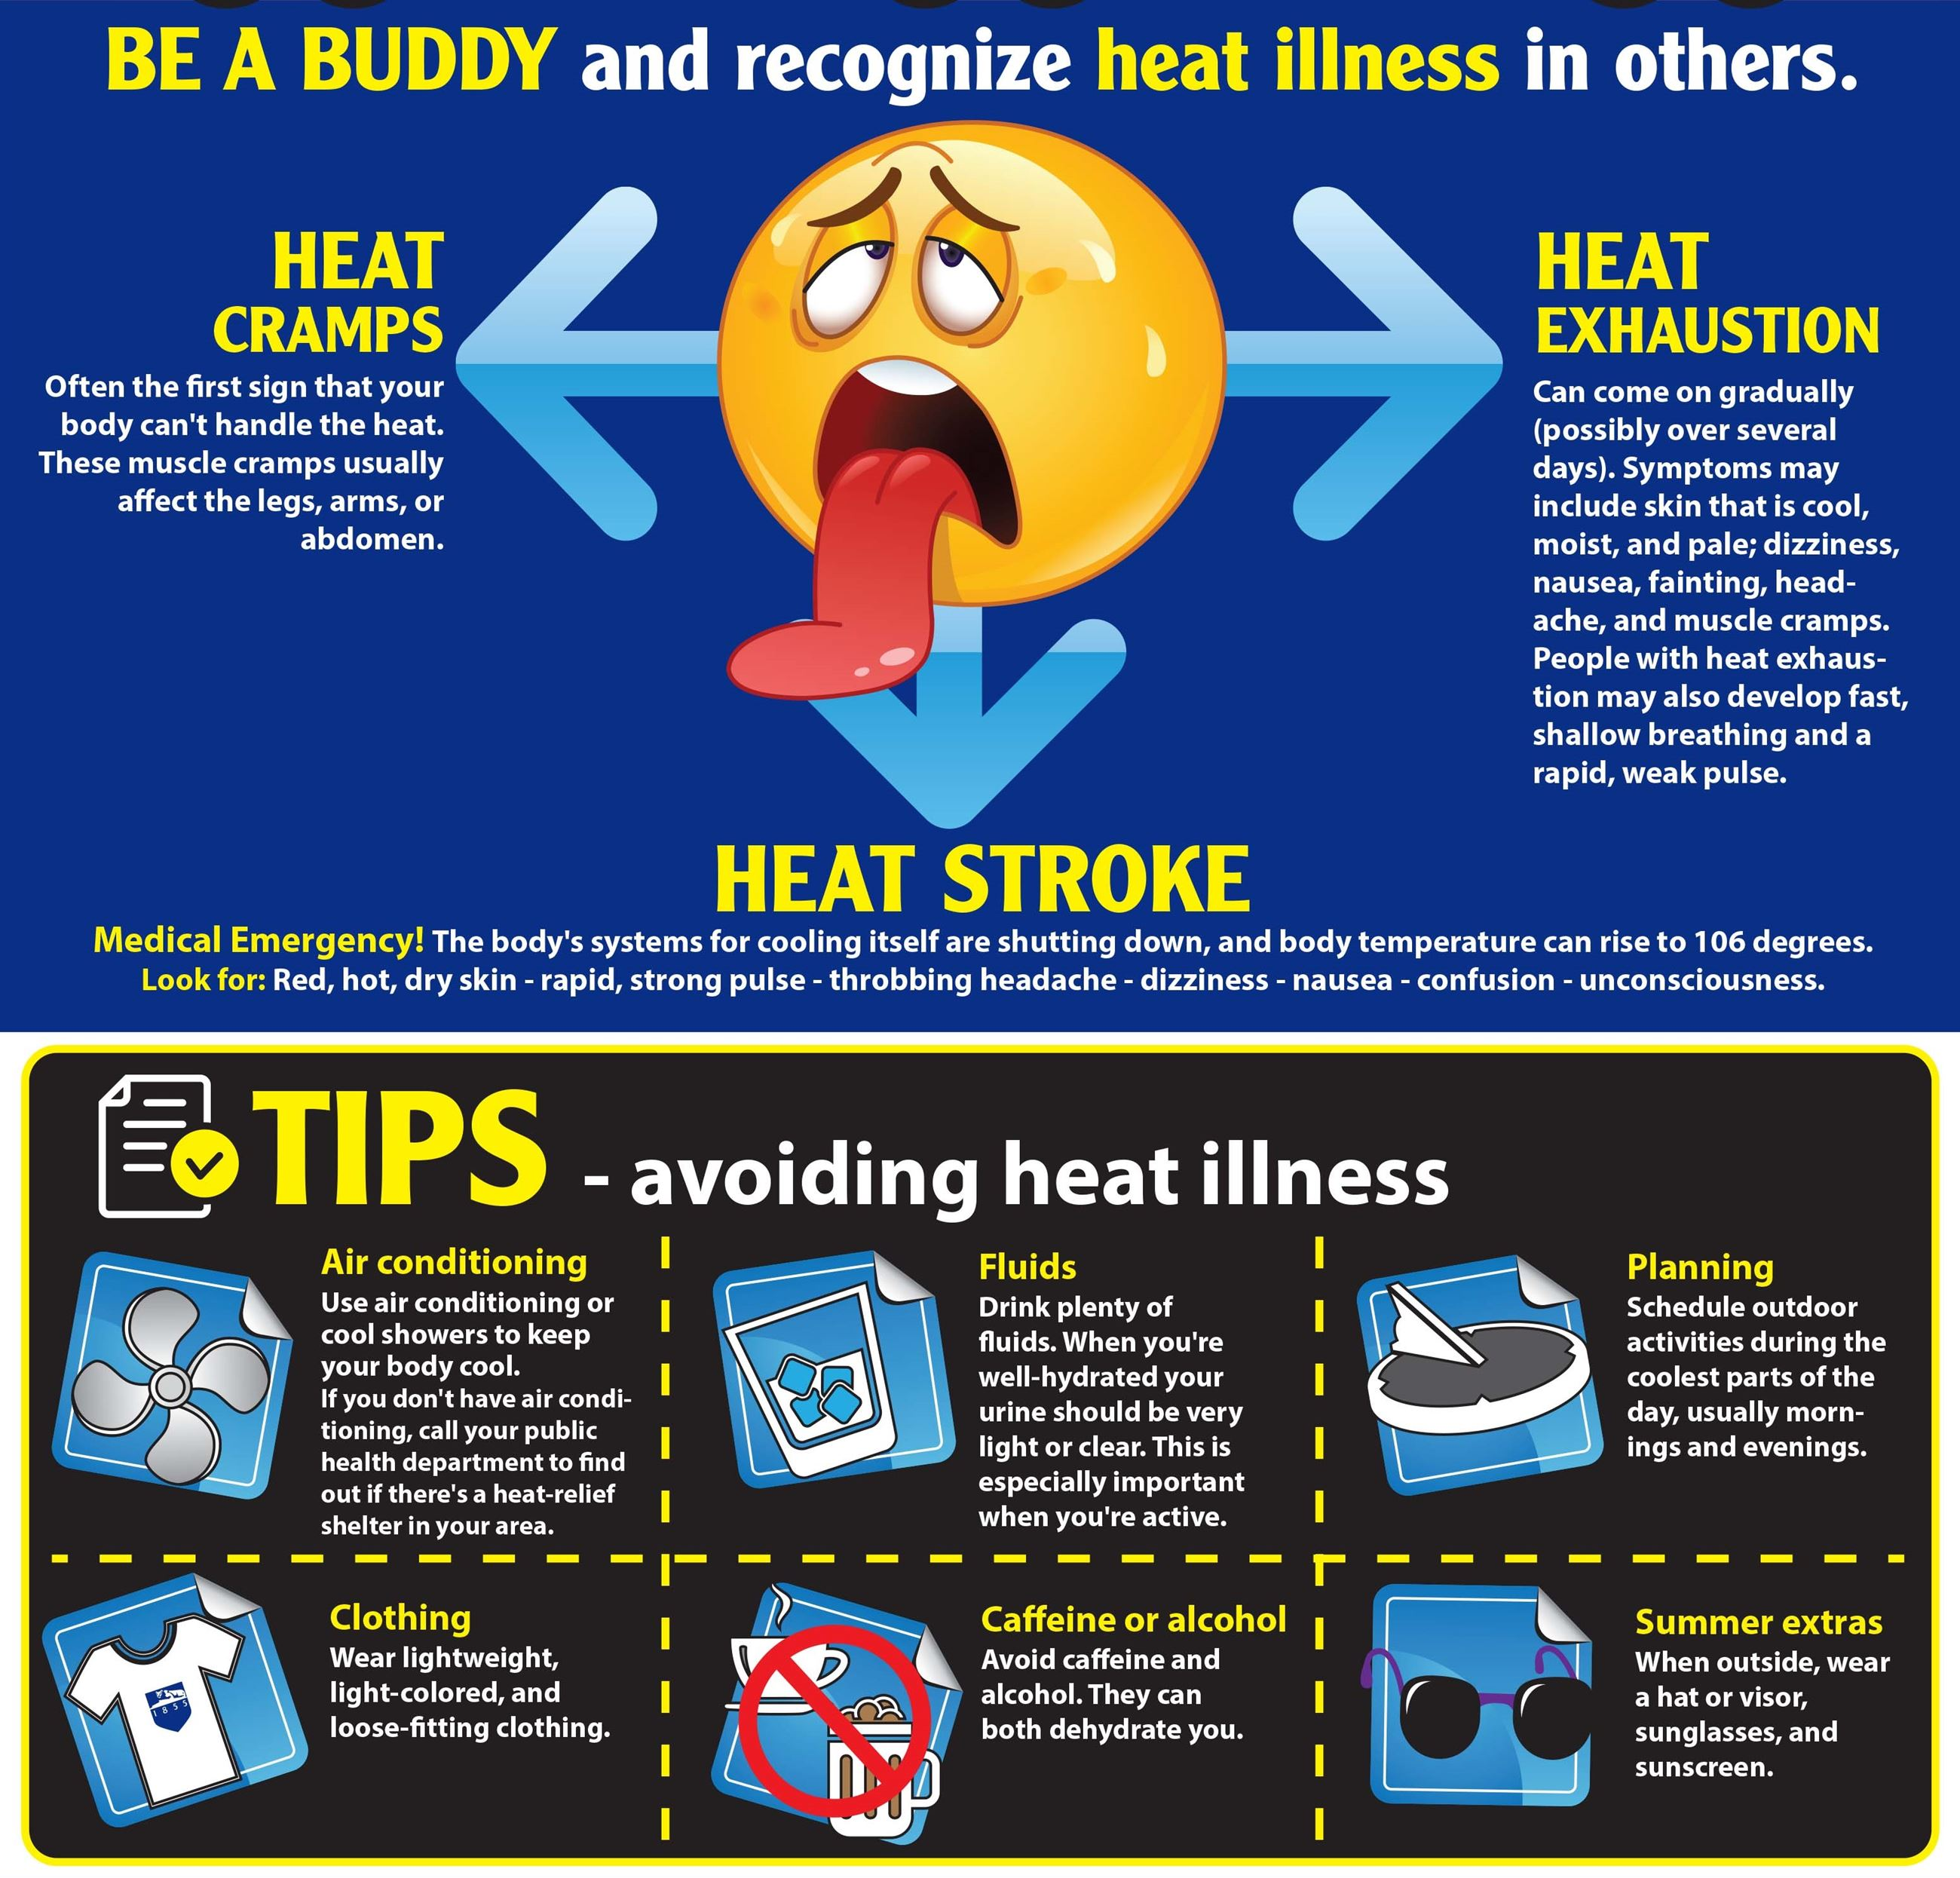 Recognize Heat Illness